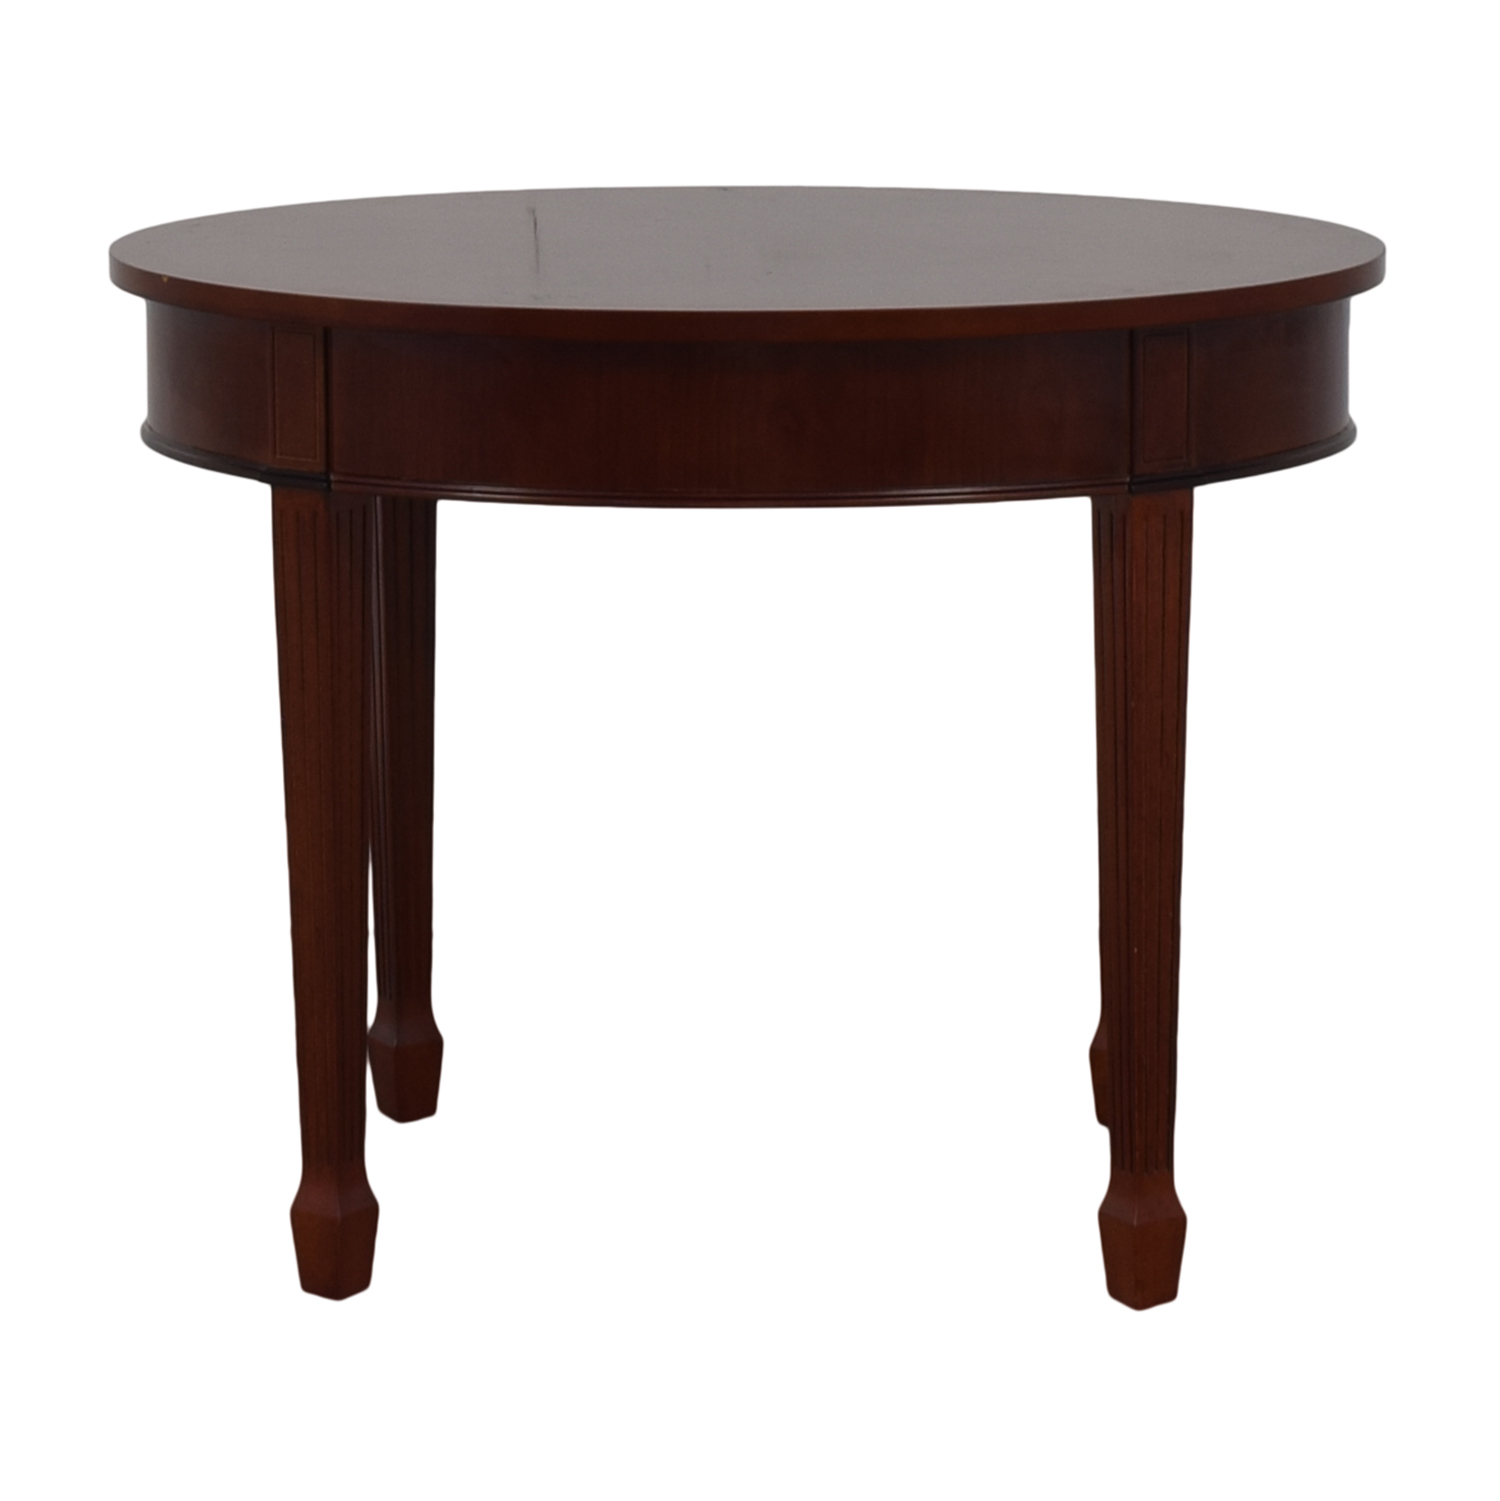 Bombay Company Bombay Company Cherry Wood Oval Table nyc